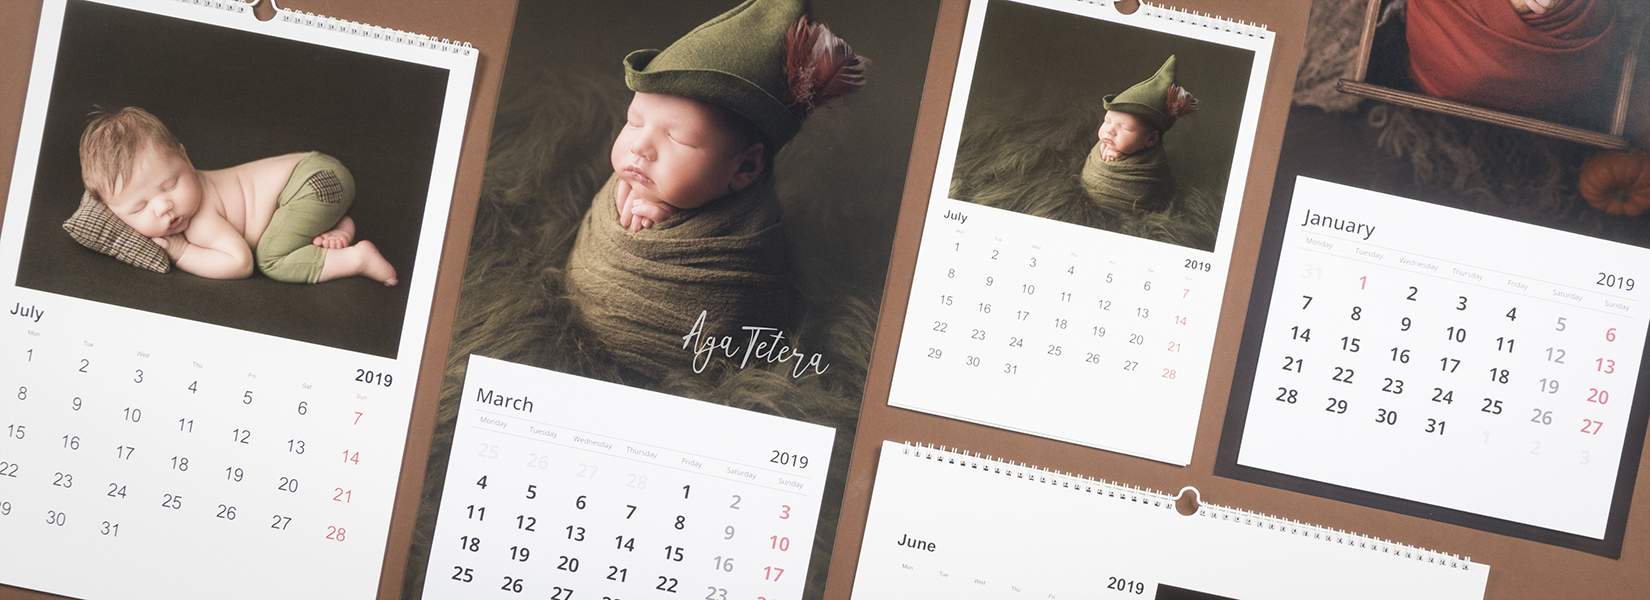 Calendar HD BASIC photo calendar professional print nphoto